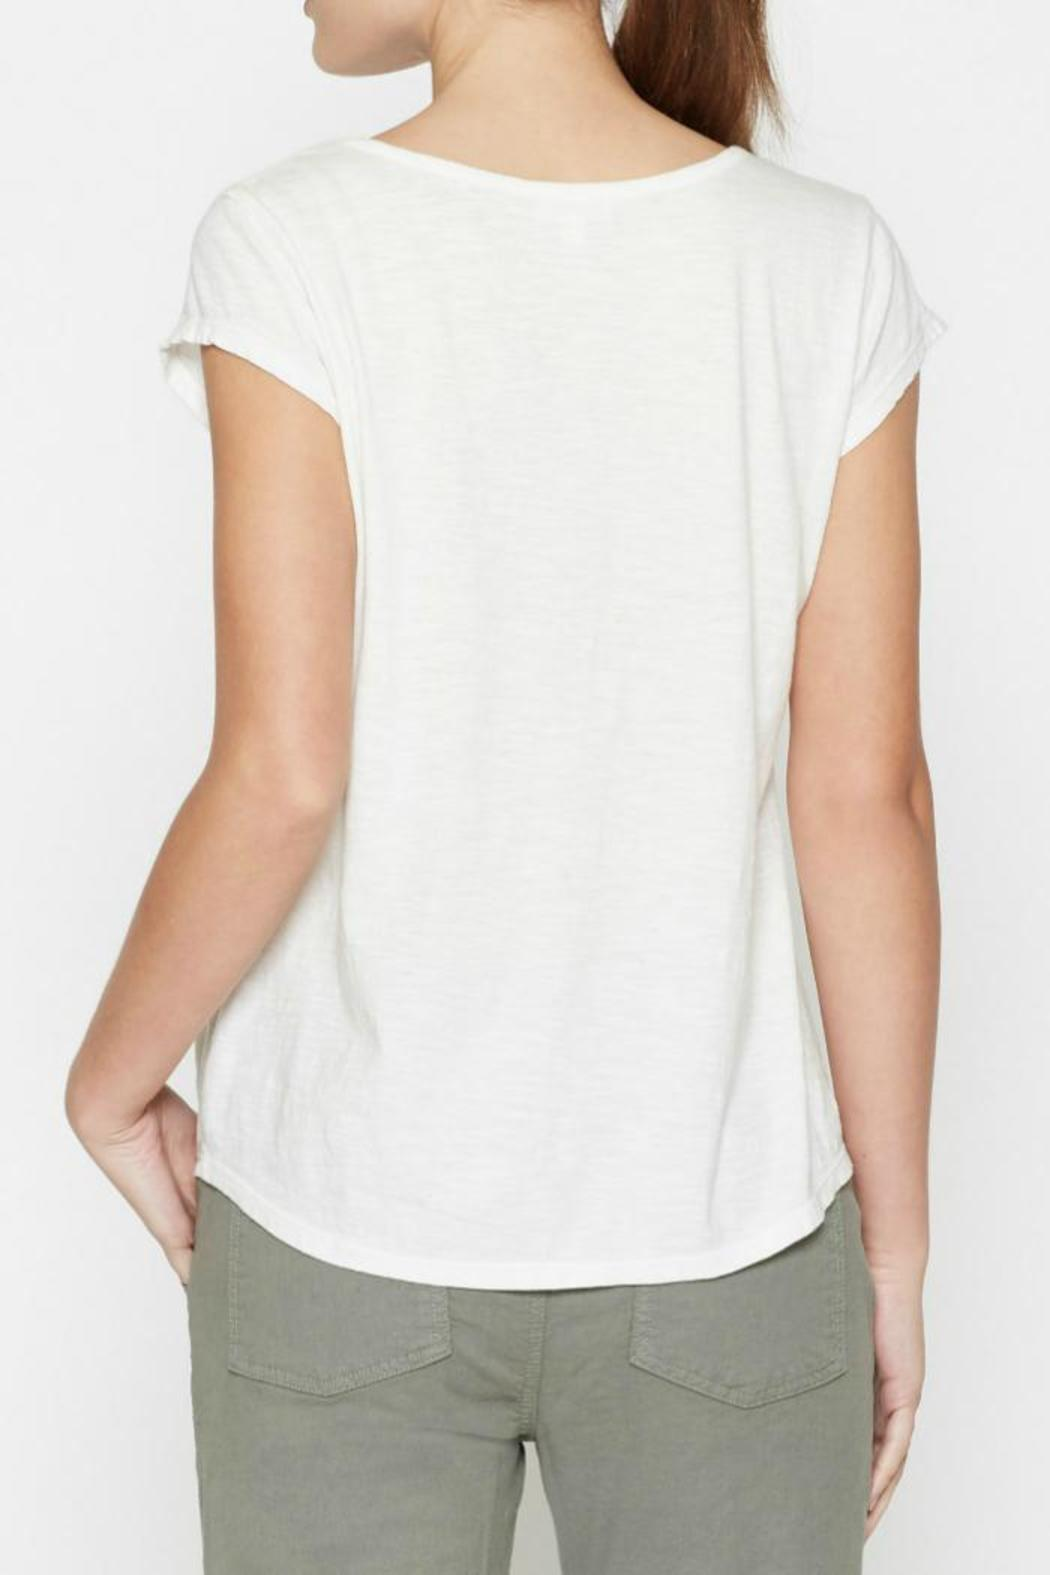 Soft Joie Dillion B Top - Front Full Image